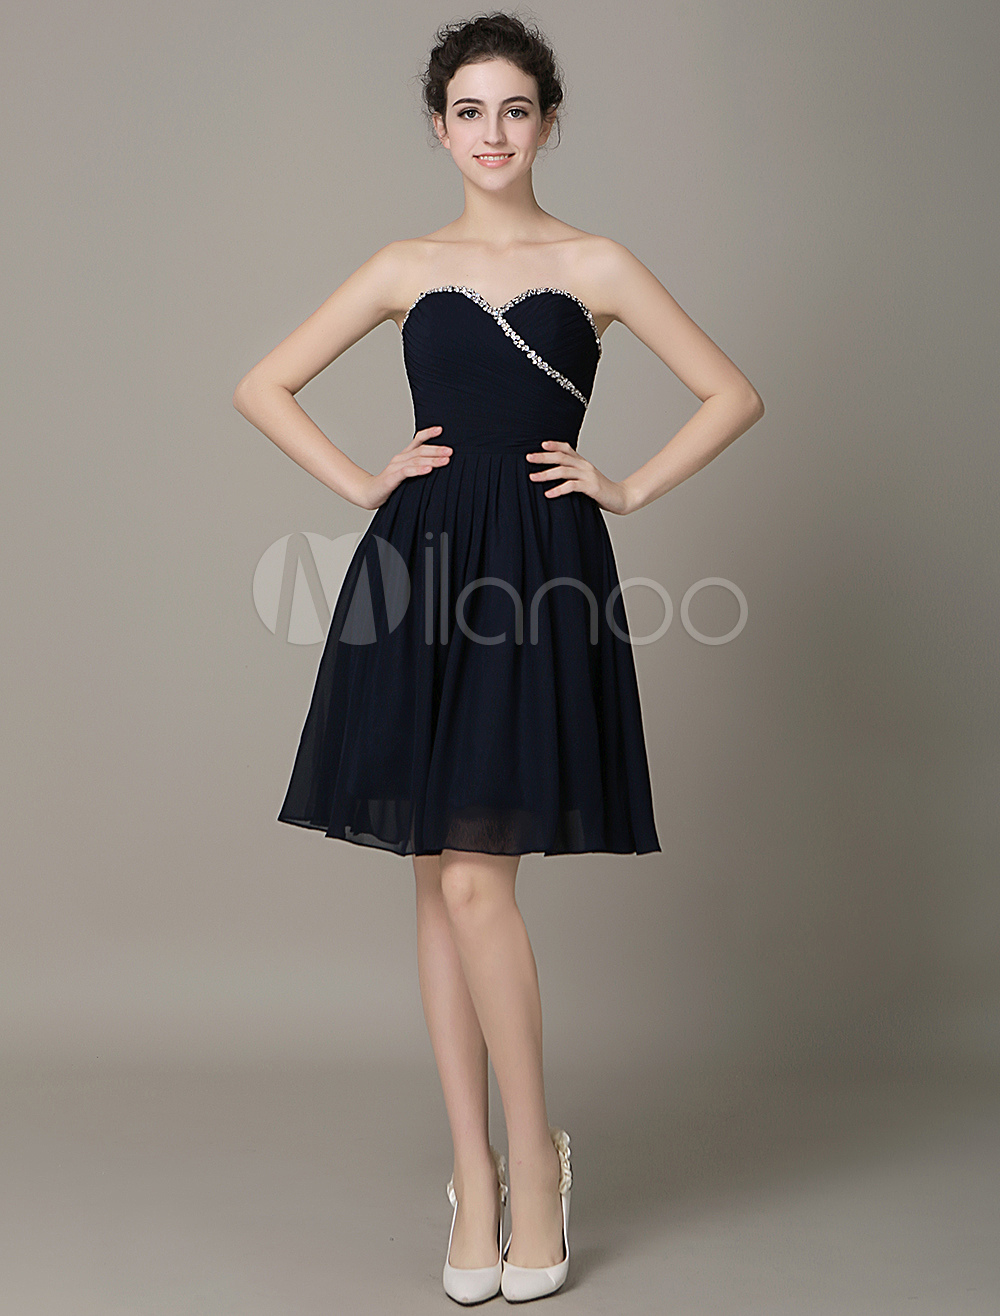 Buy Strapless Chiffon Braidsmaid Dress Sweetheart Beading Knee-Length Cocktail Dress for $109.99 in Milanoo store